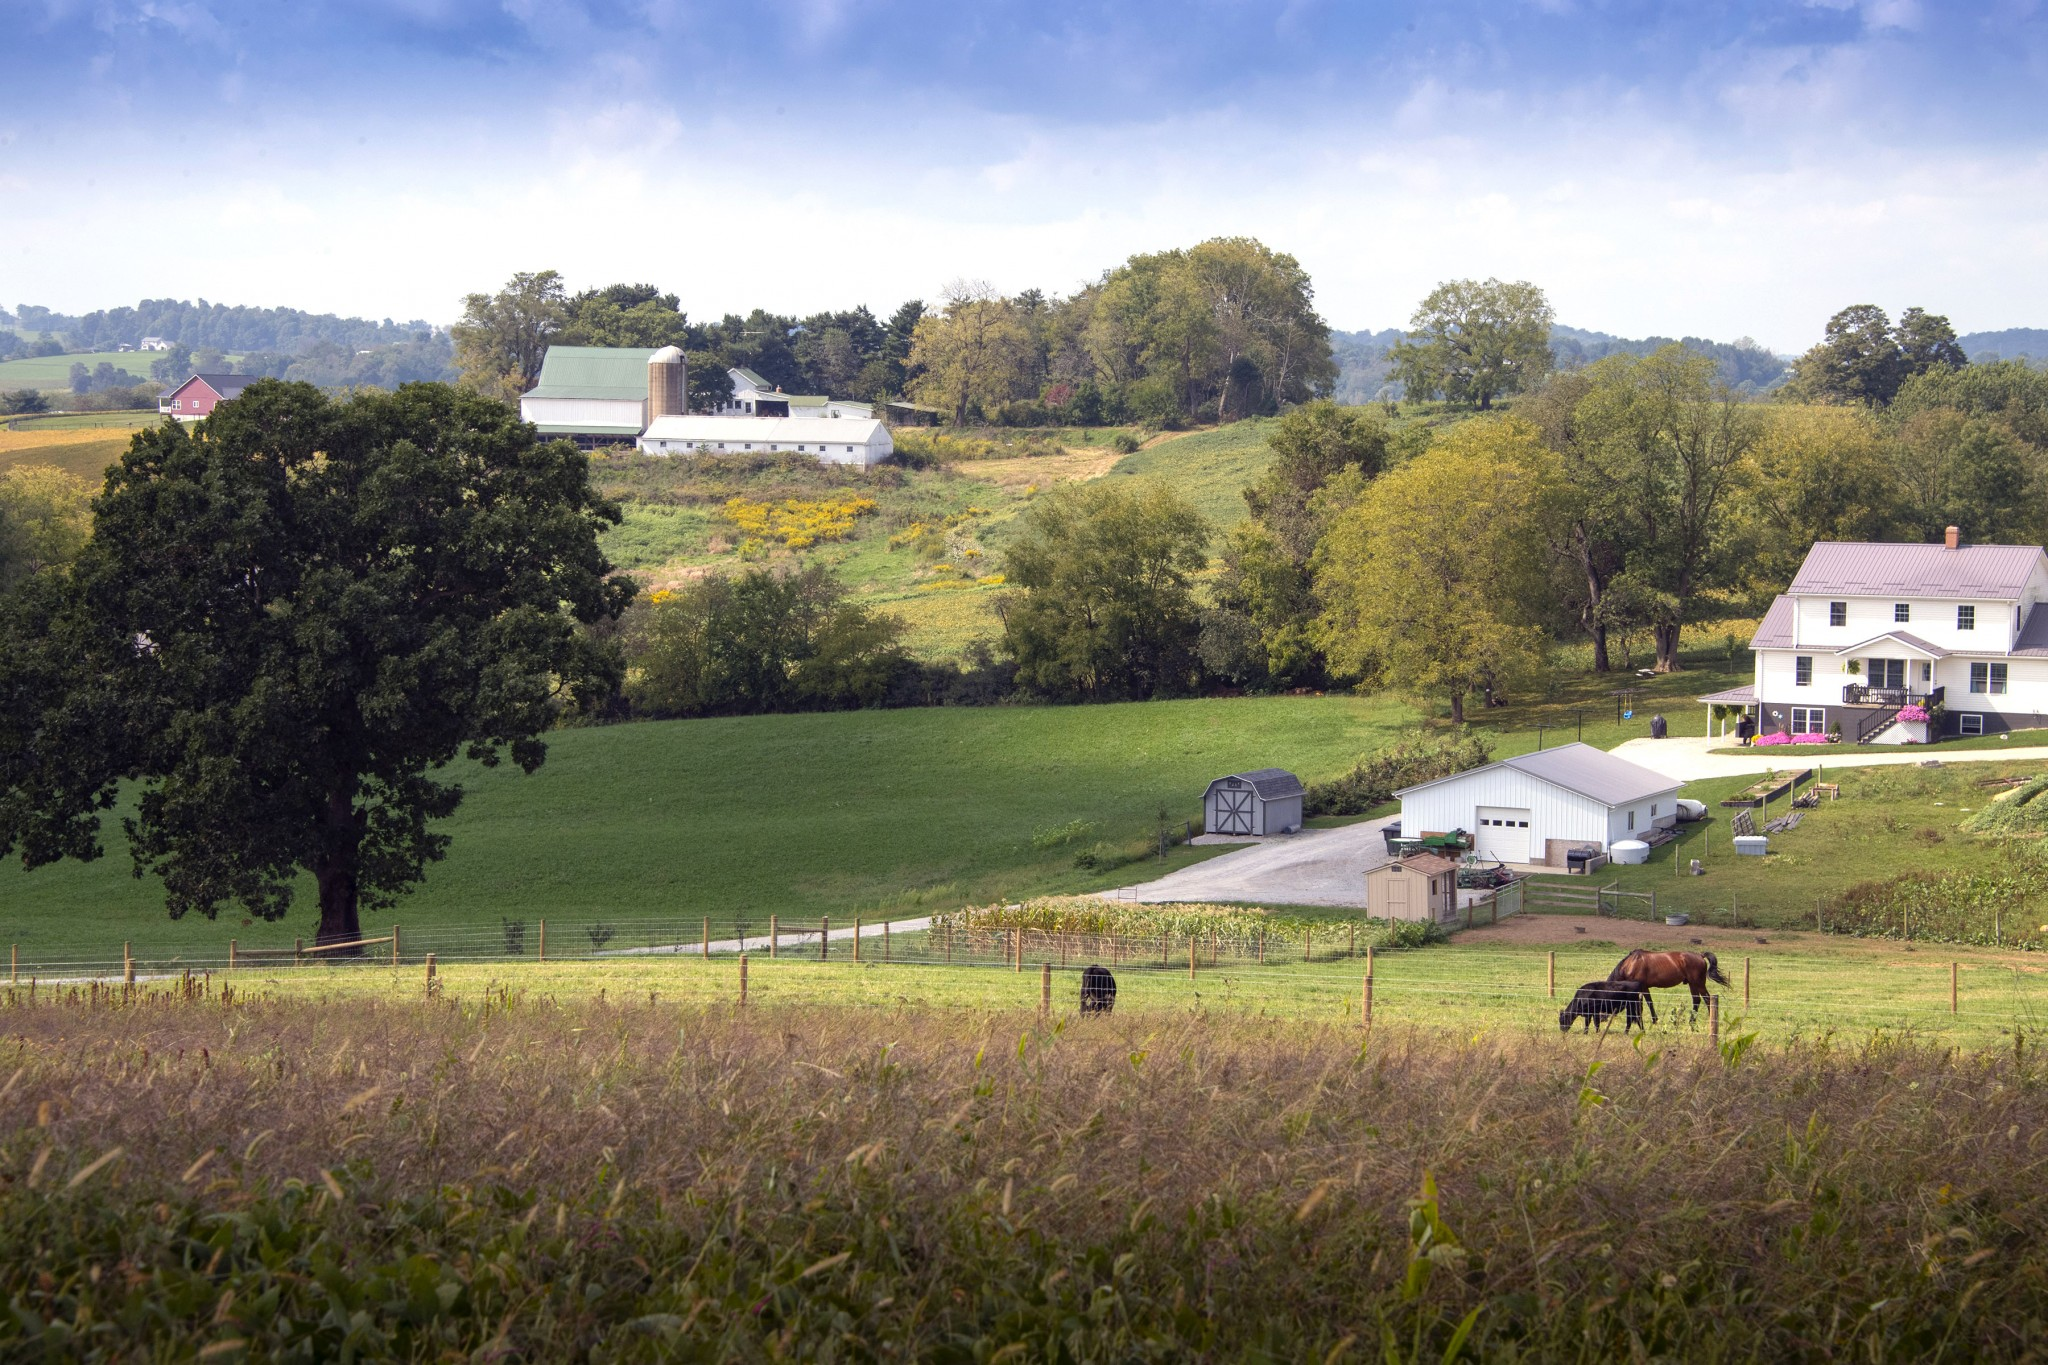 Pastoral landscapes, horse-drawn buggies, and quaint towns are trademarks of Holmes County, home to one of America's largest Amish communities. (Photo by Art Weber)